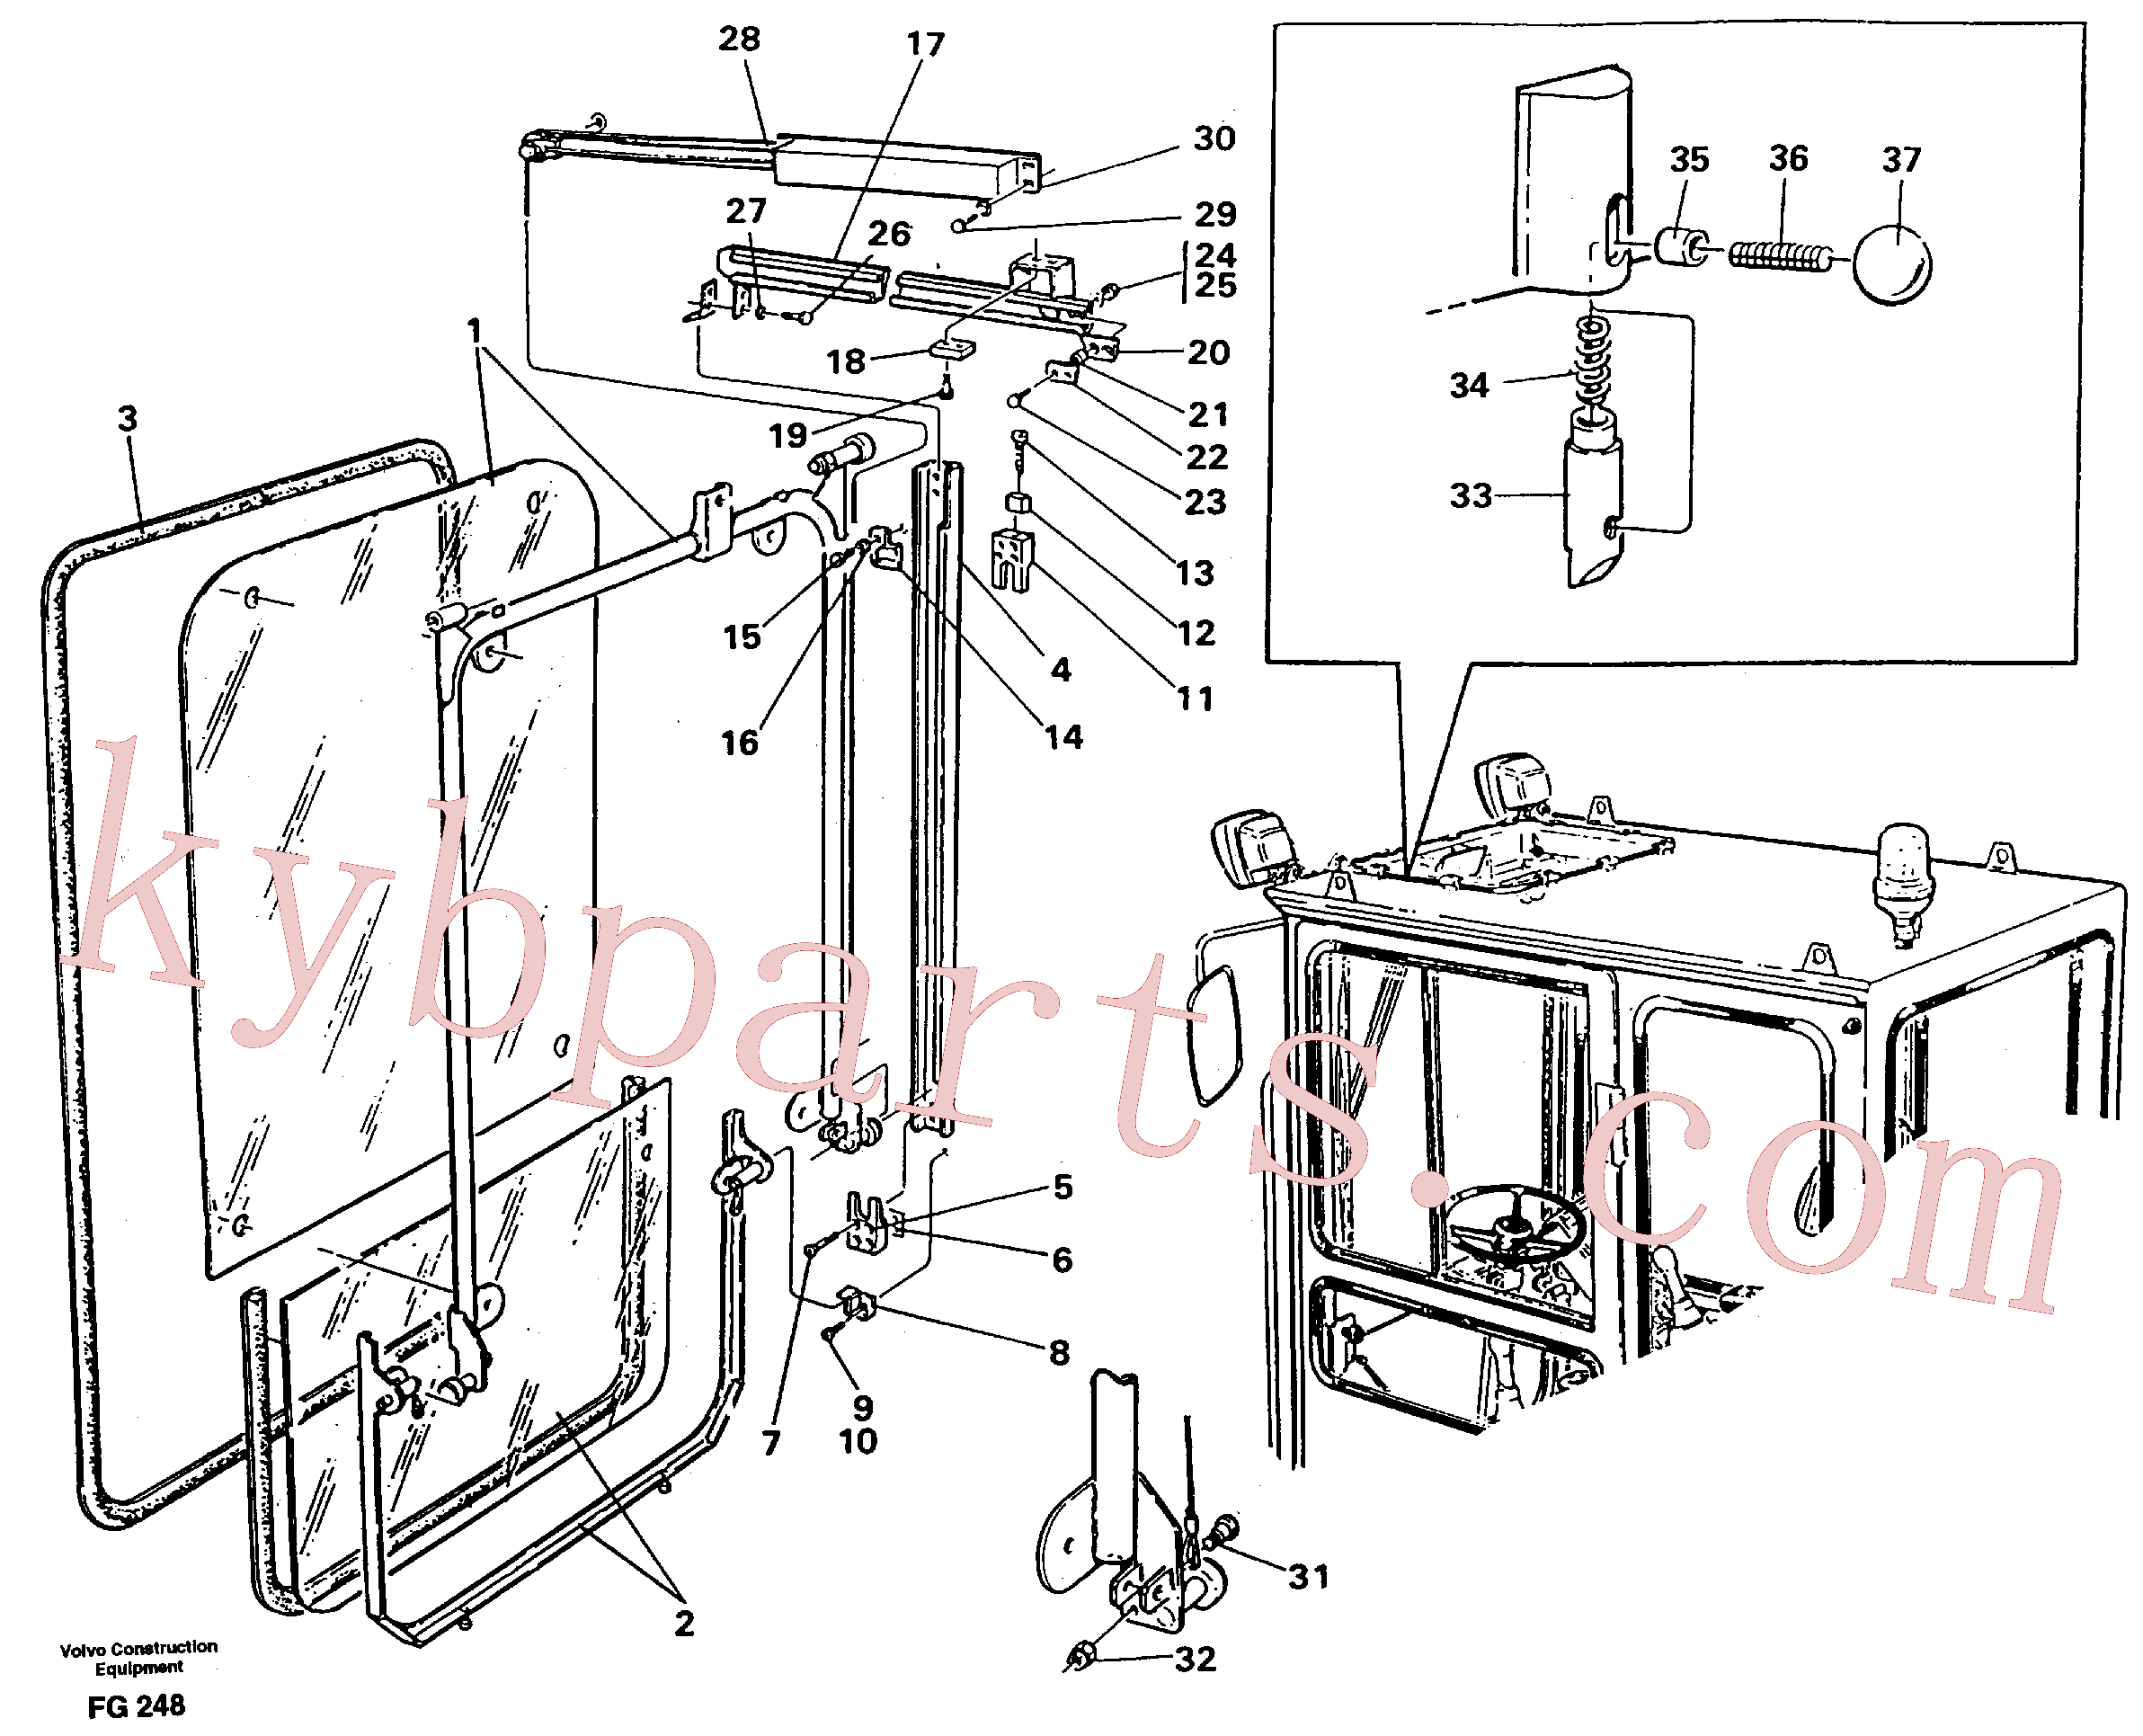 VOE959187 for Volvo Front window, Lifting device(FG248 assembly)